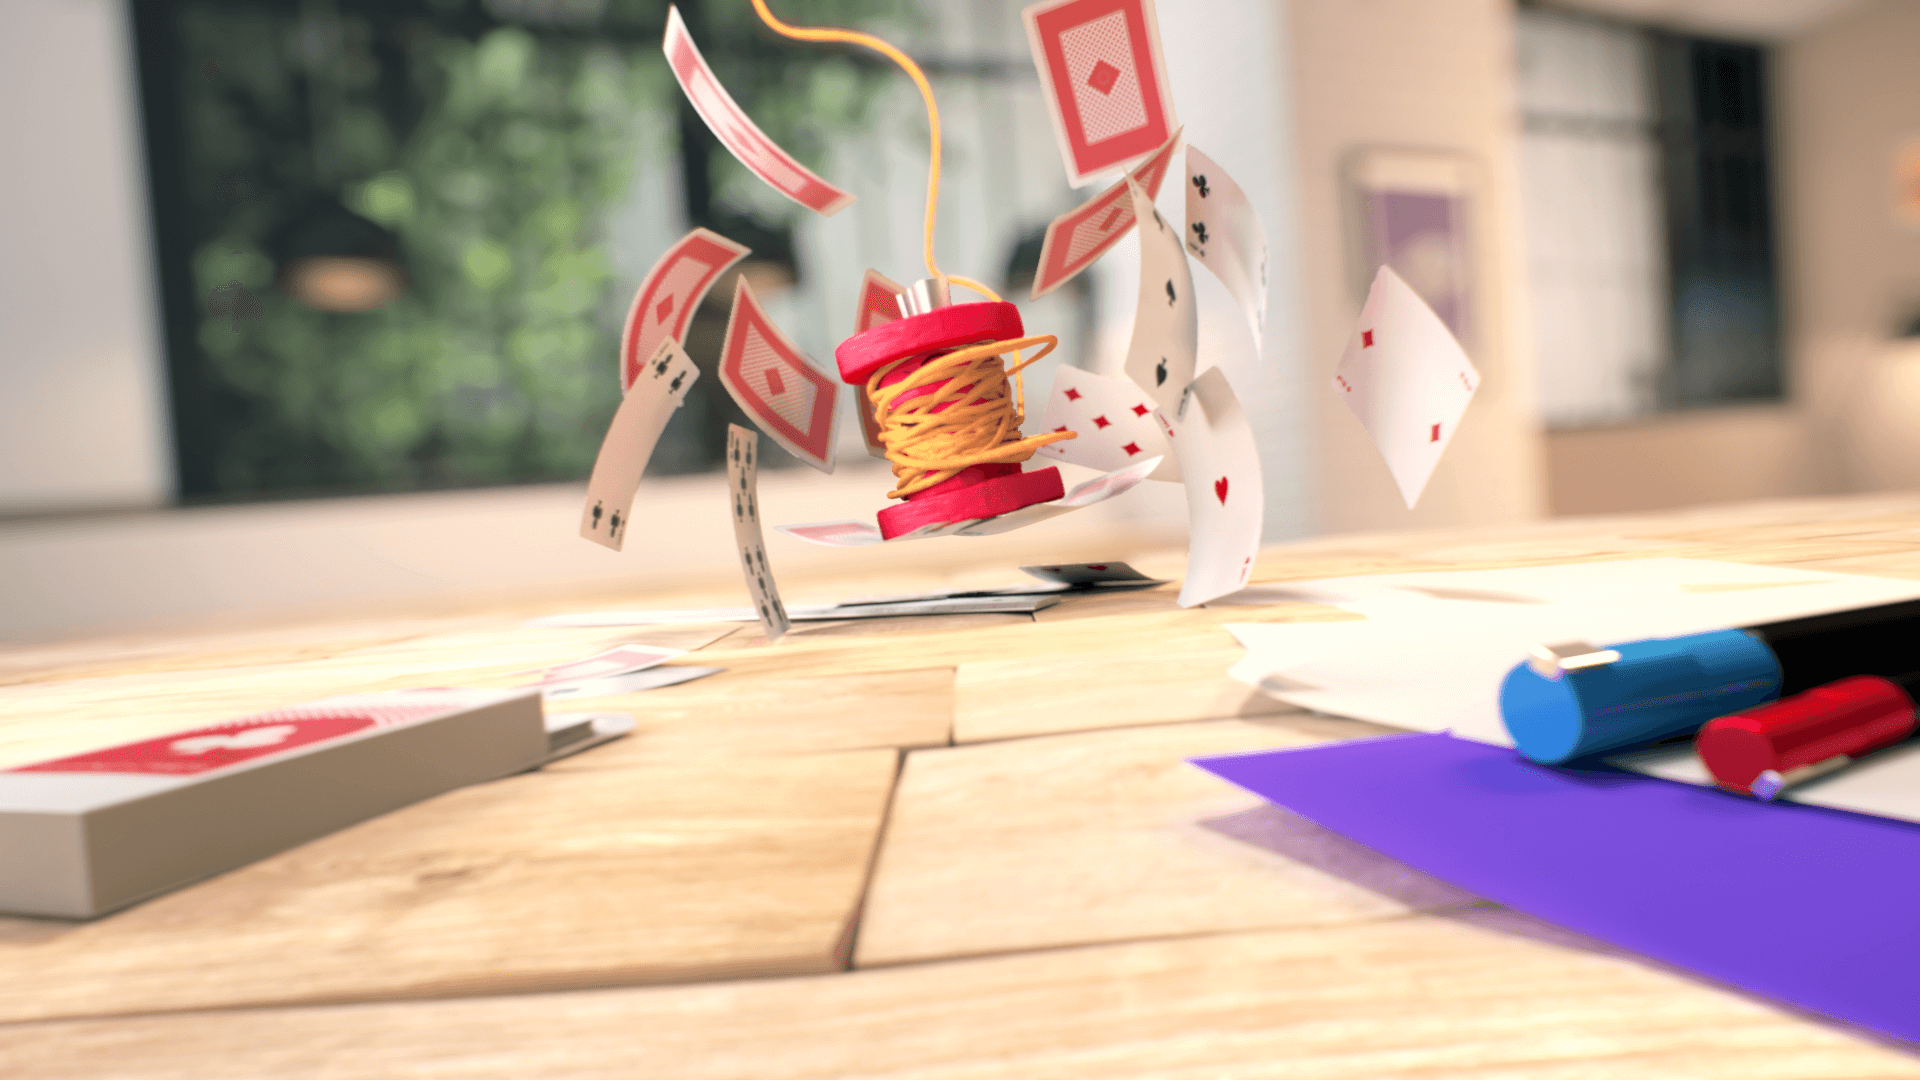 Spool of 3D plasticine thread falling on a deck of playing cards